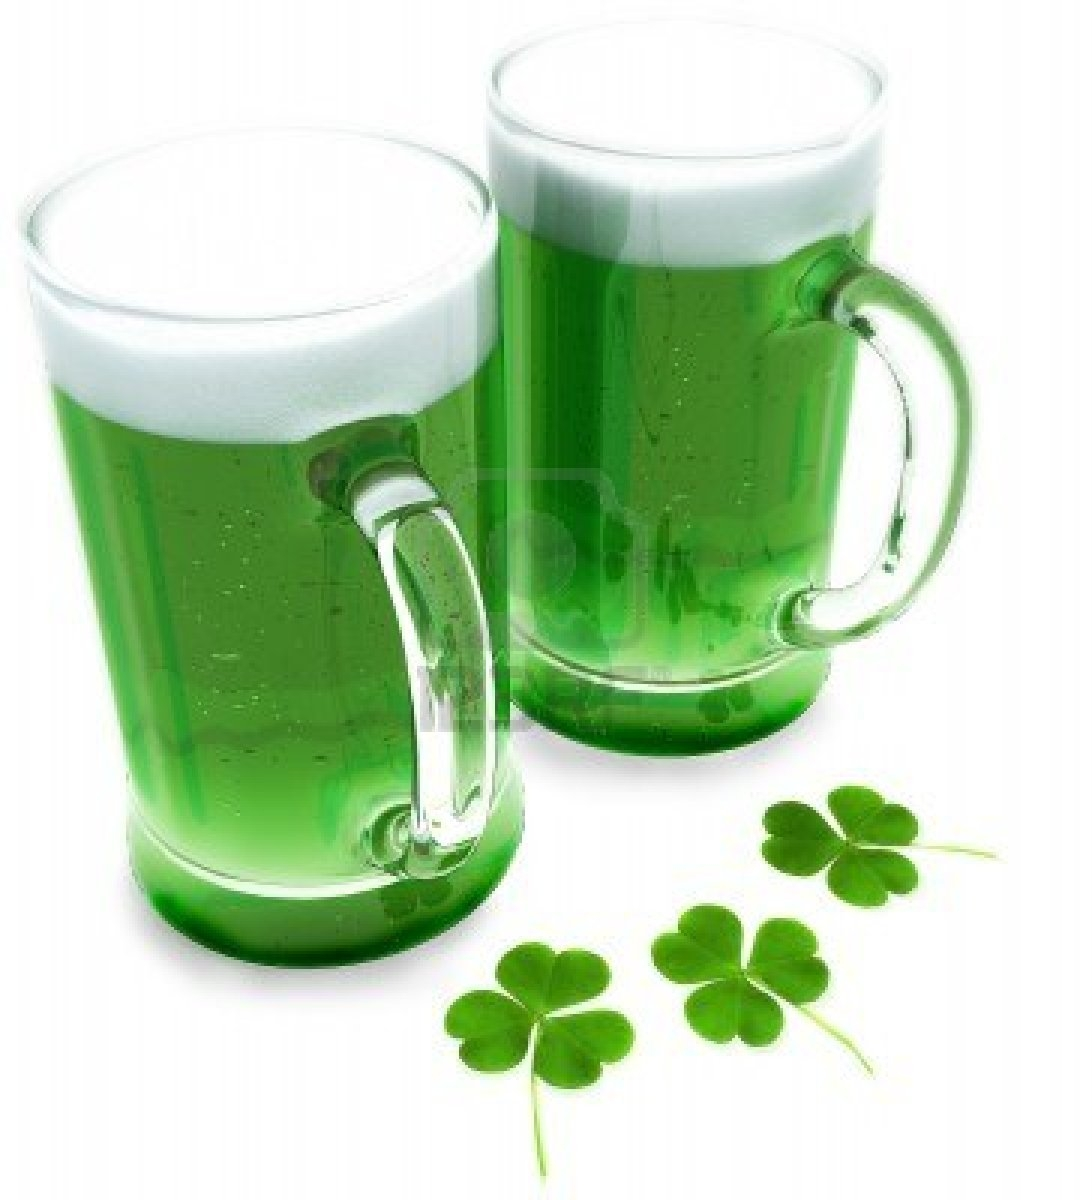 Tips on a safe and fun St. Patrick's Day